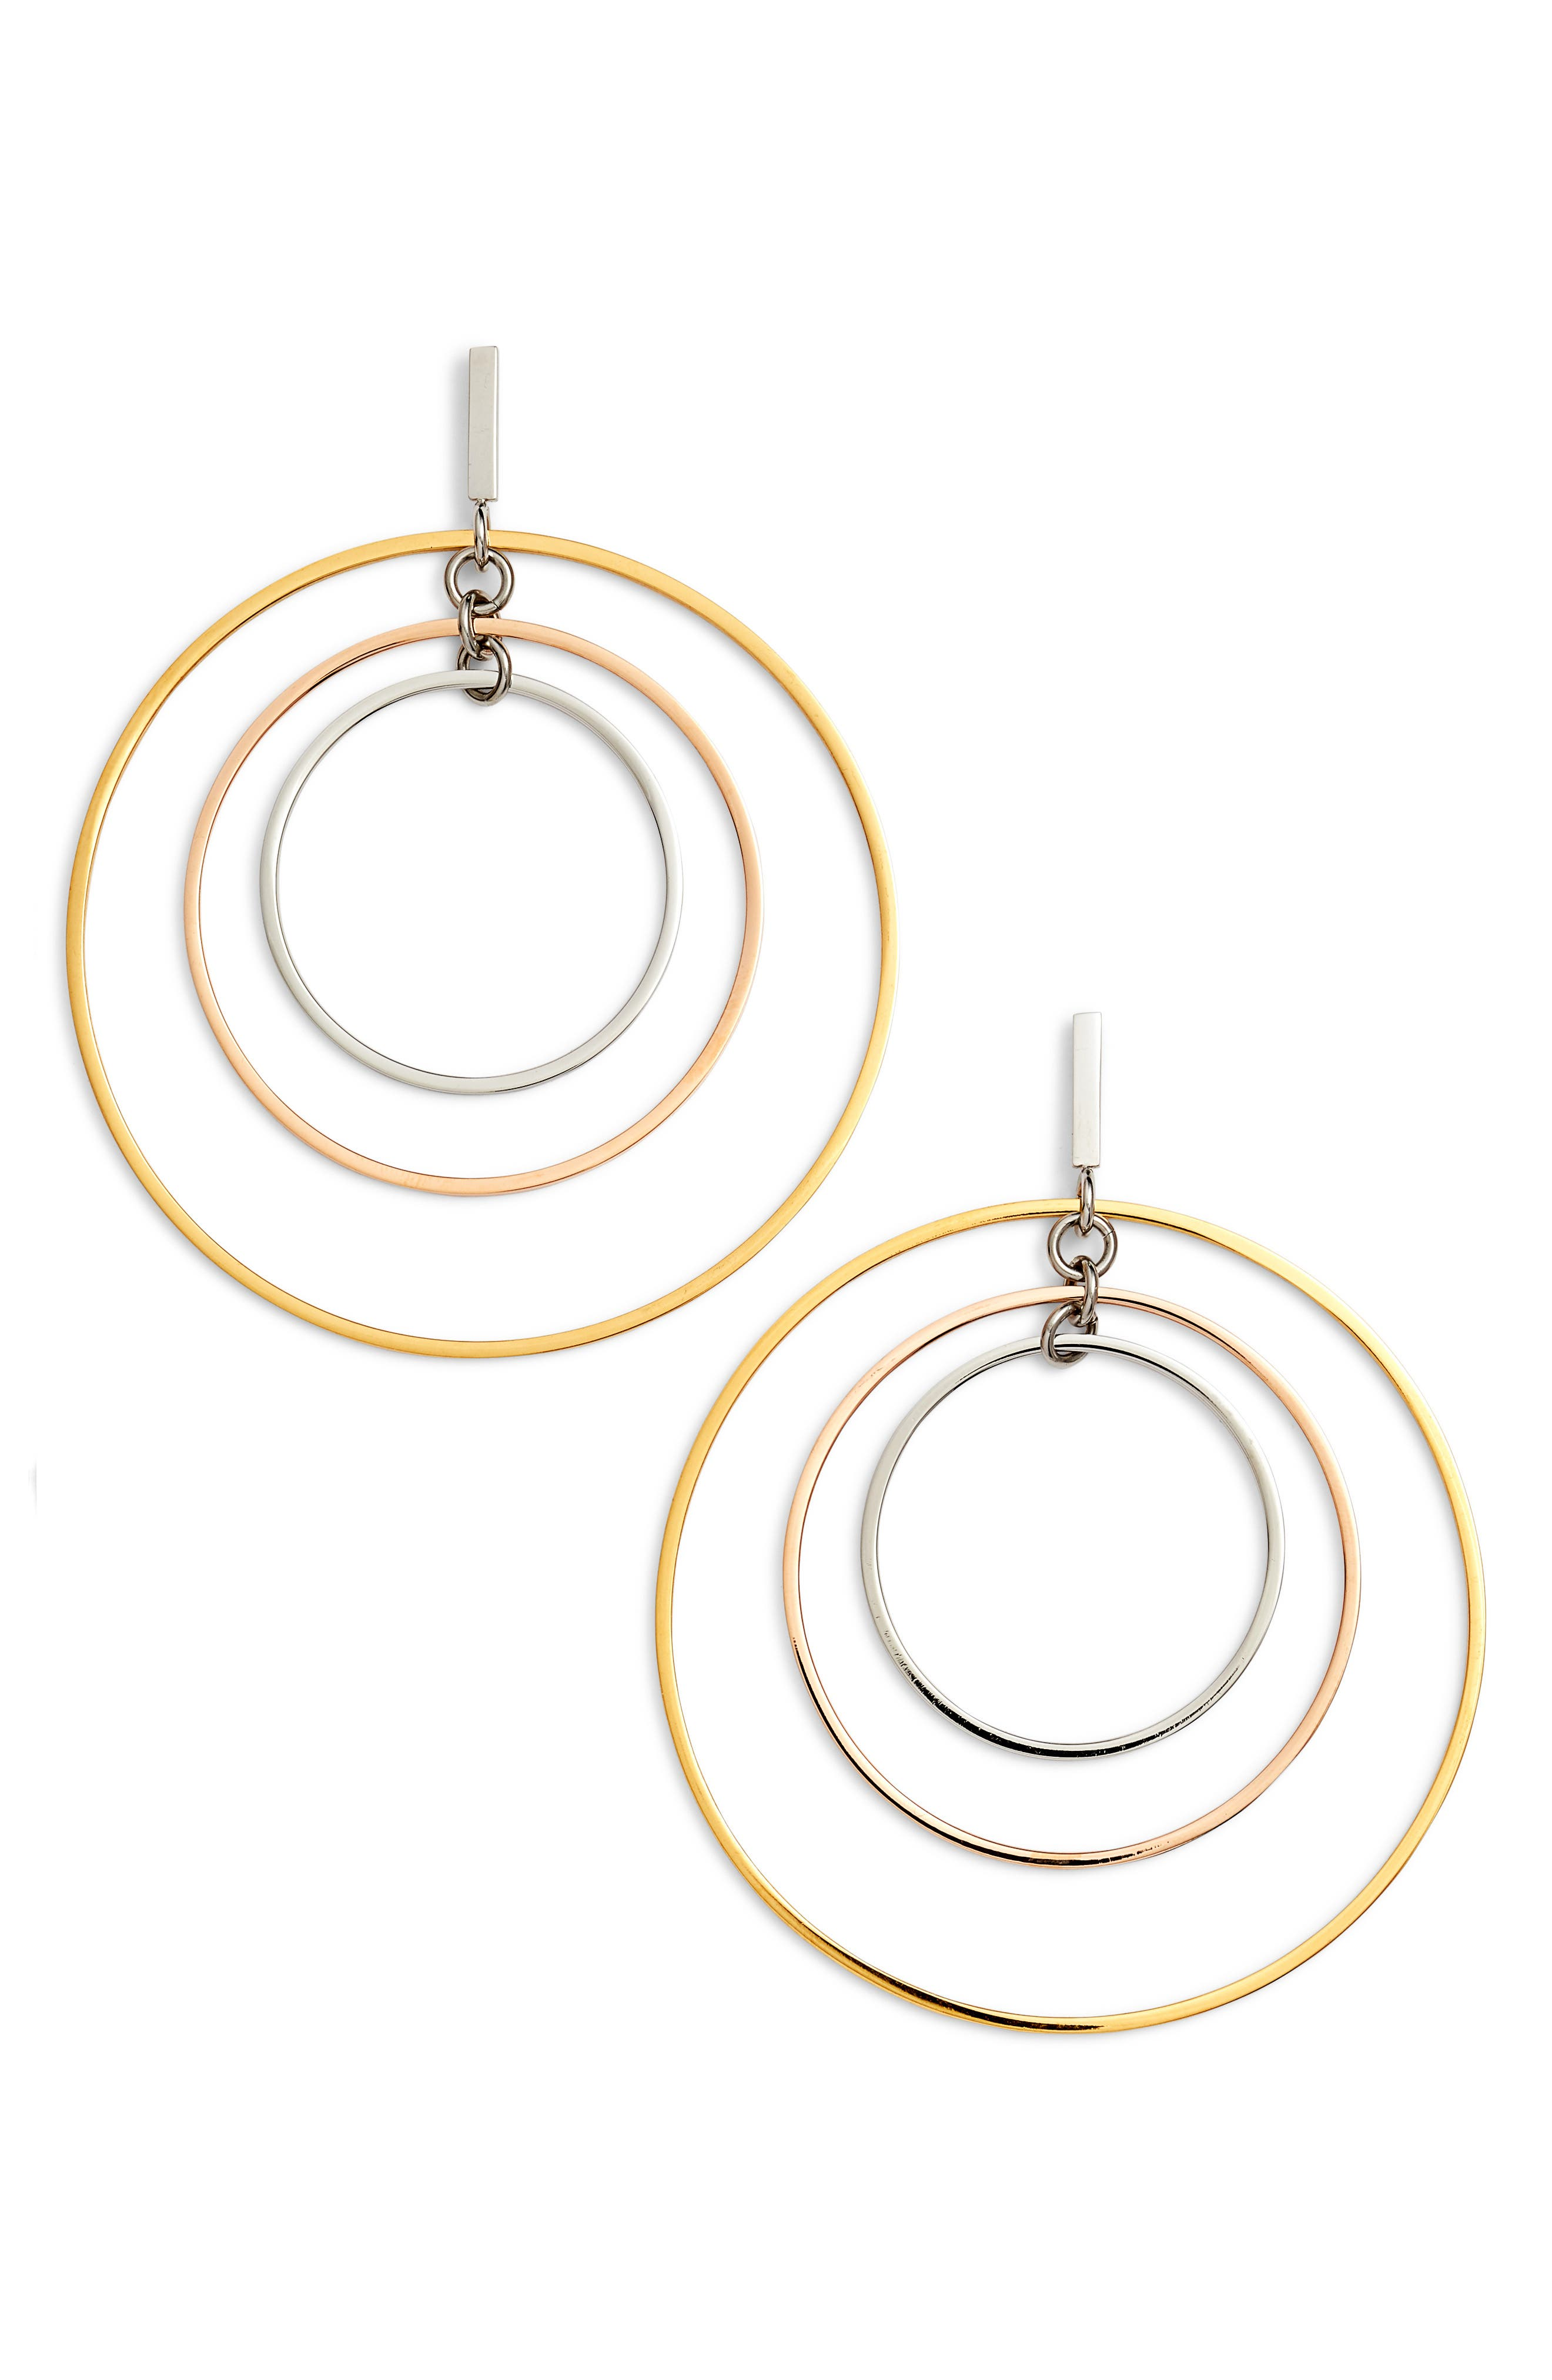 Wire Hoop Earrings,                             Main thumbnail 1, color,                             GOLD/ SILVER/ ROSE GOLD